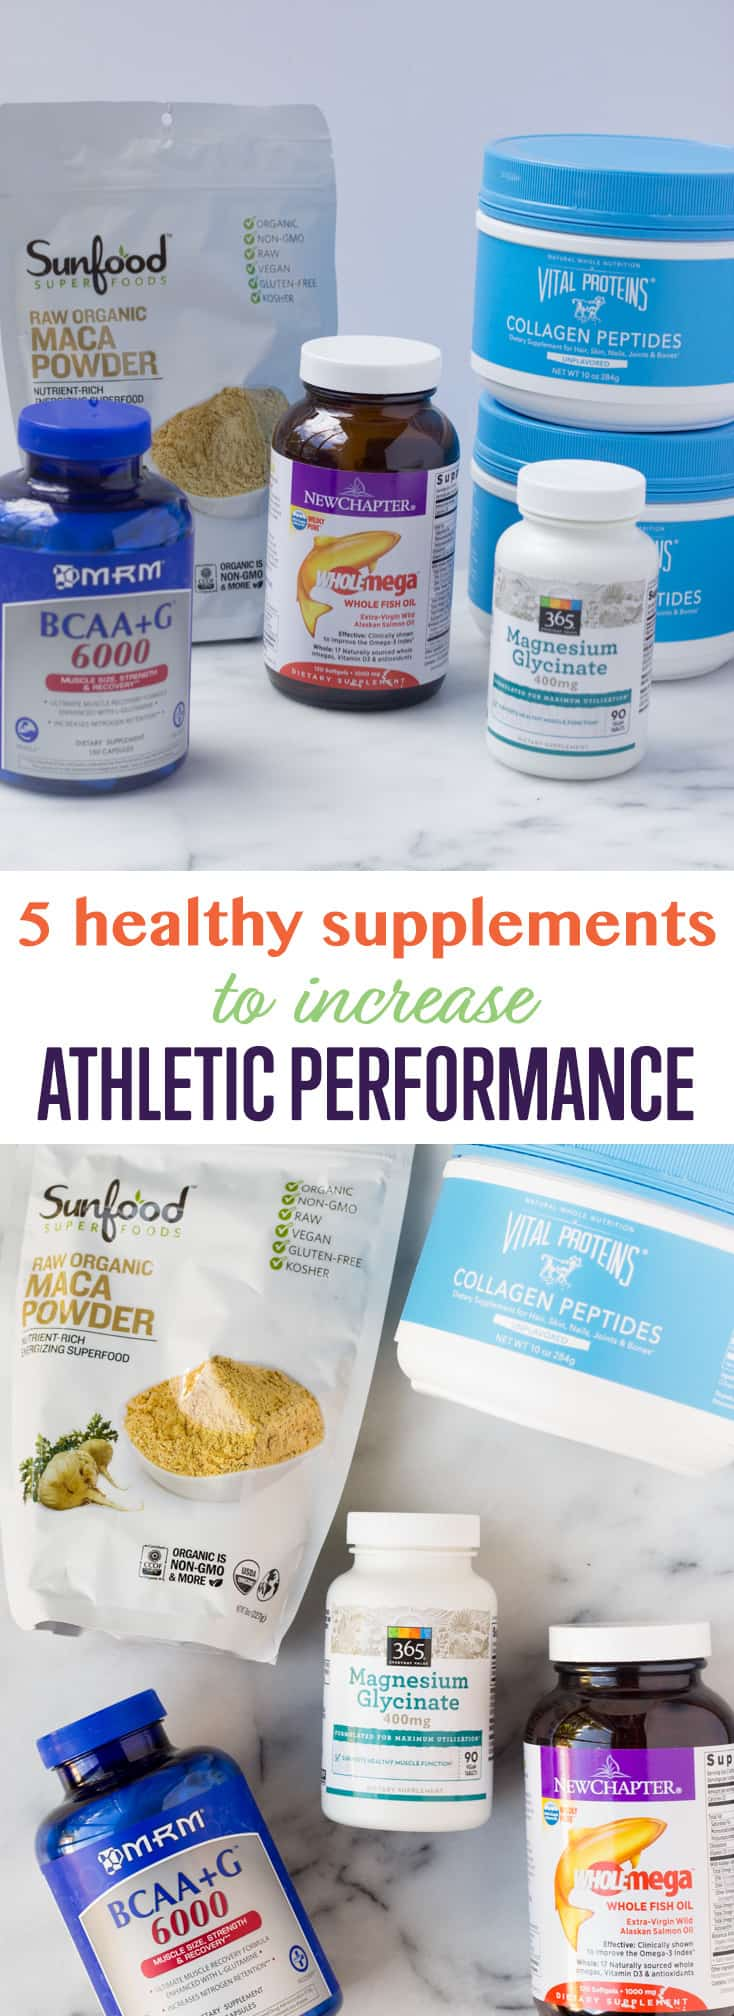 Step up your fitness! Add these 5 healthy supplements to increase athletic performance - build muscle, recover faster, increase intensity, & reduce fatigue! - Eat the Gains